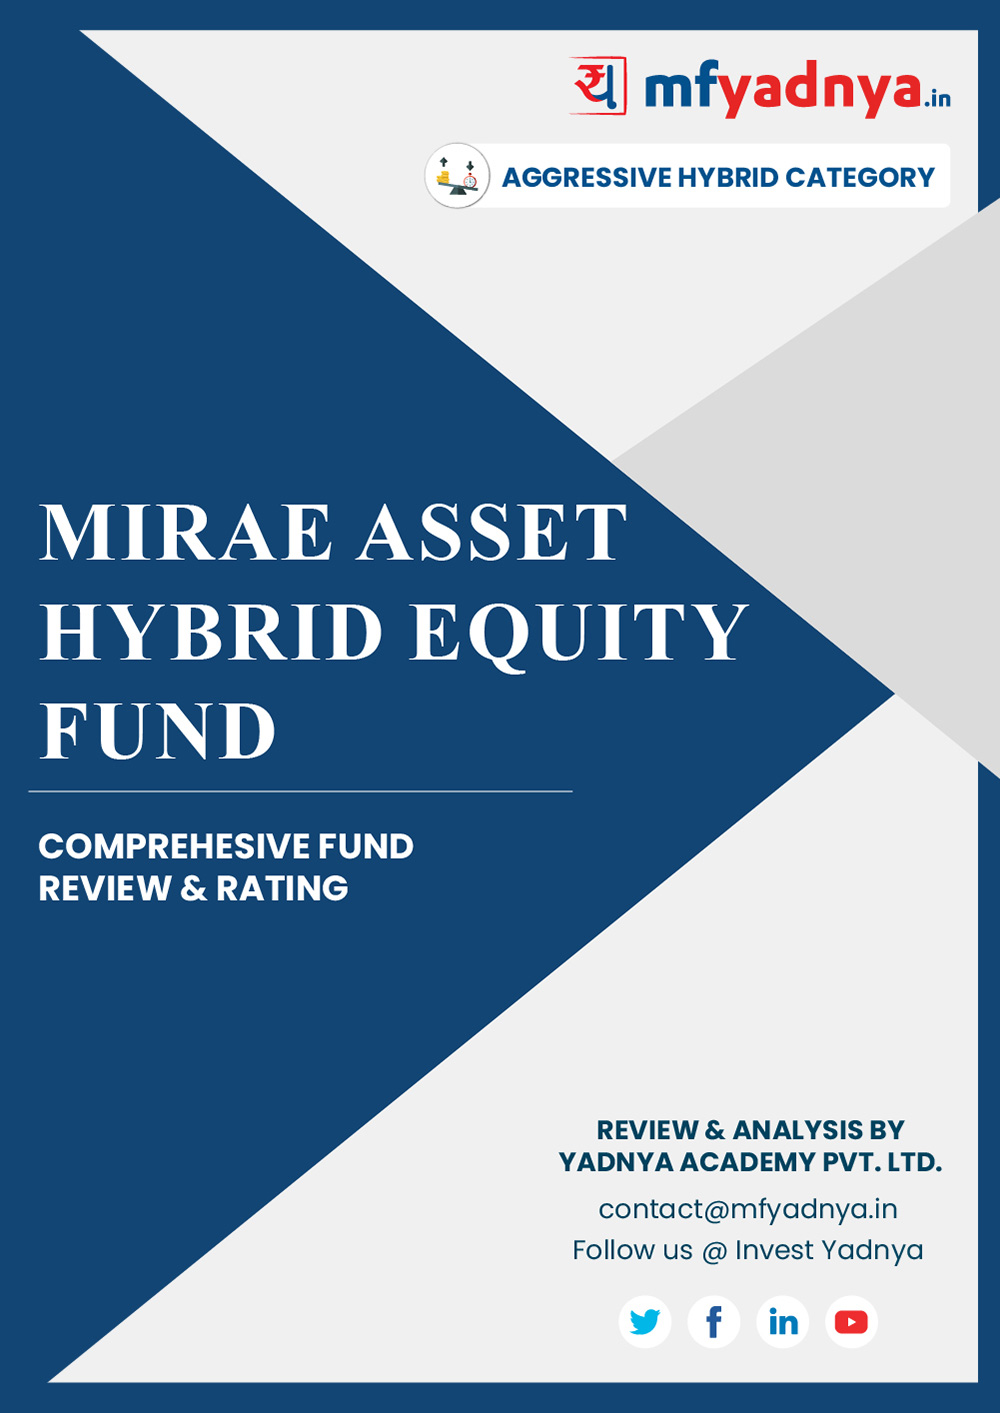 Aggressive Hybrid Category Review - 'MIRAE Asset Hybrid Fund'. Most Comprehensive and detailed MF review based on Yadnya's proprietary methodology of Green, Yellow & Red Star. Detailed Analysis & Review based on Feb 29th, 2020 data. Review also gives you the historical trend of the performance which will show fund's performance consistency.